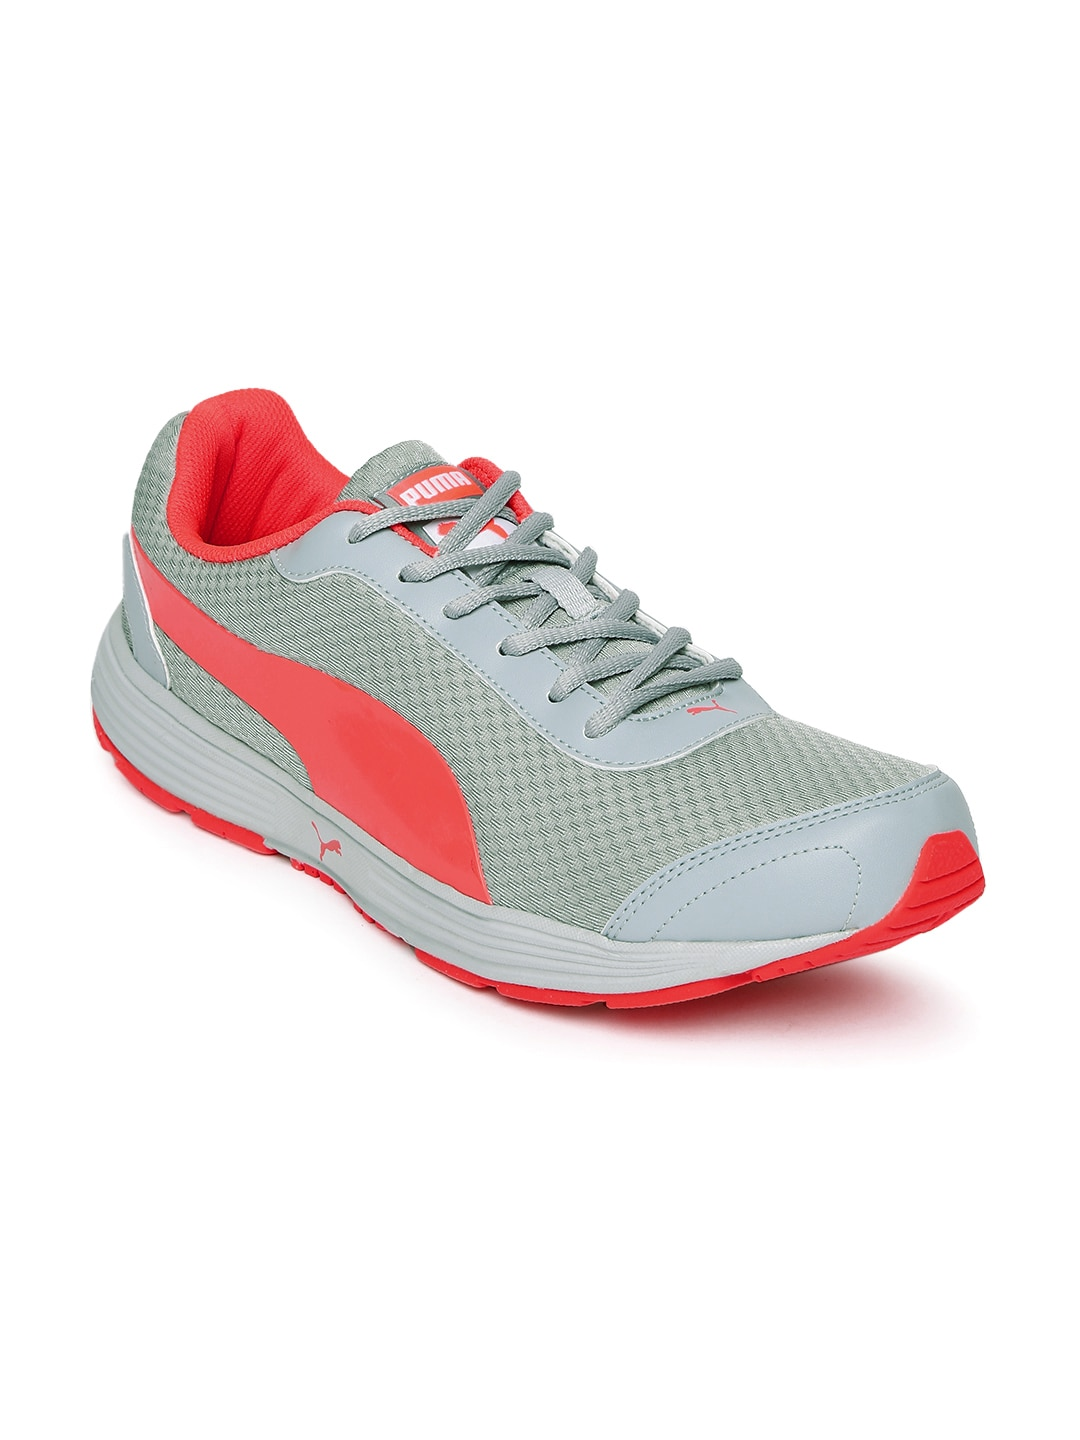 f945b9dcc7c7b4 Football Sports Shoes - Buy Football Sports Shoes Online in India